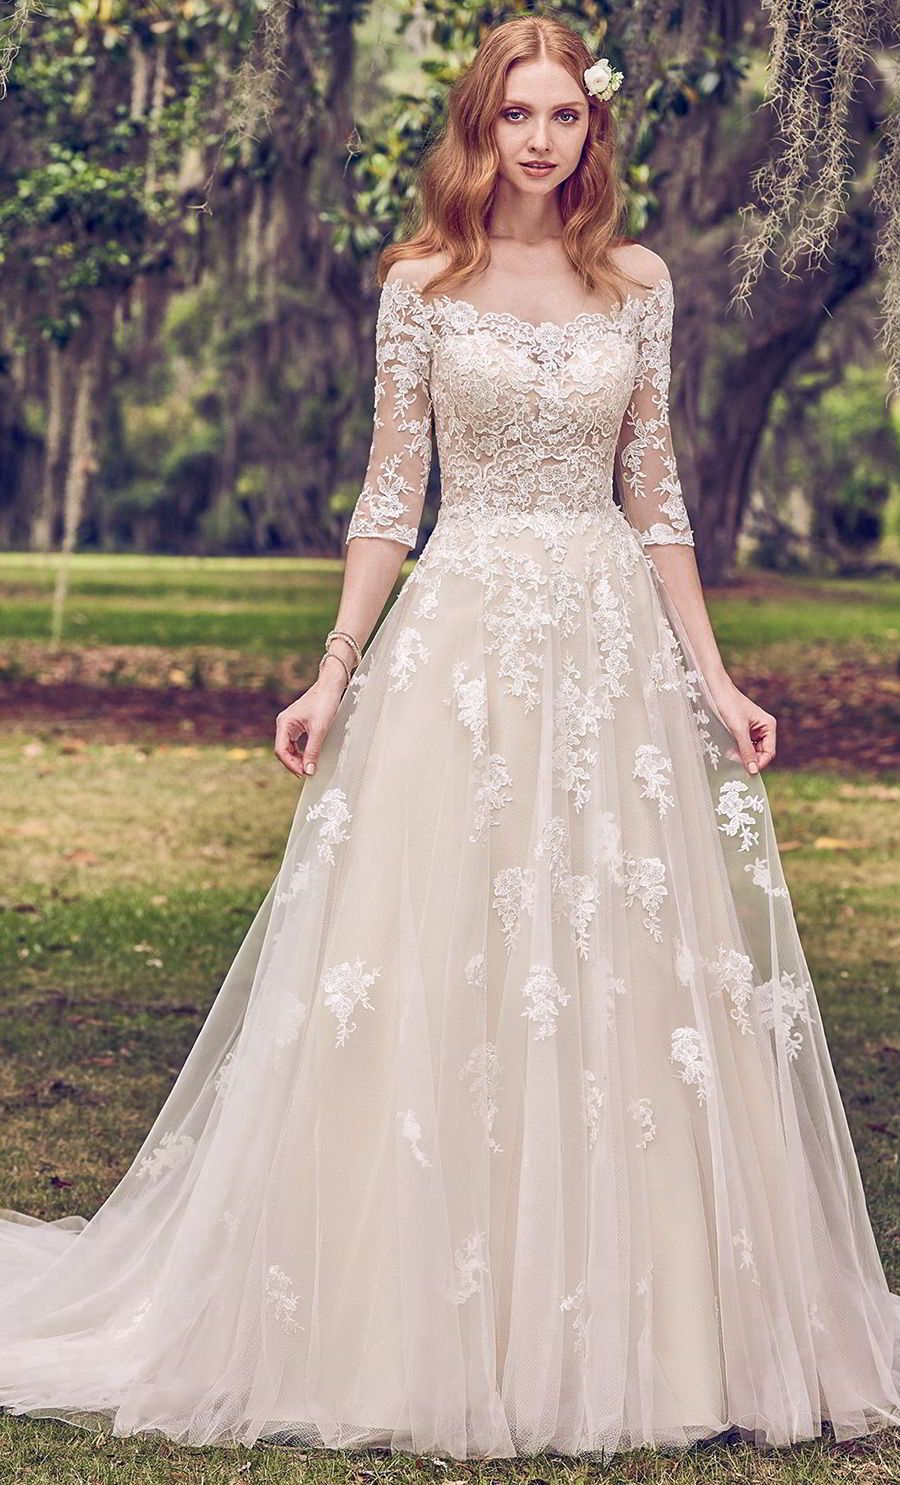 A Gold Dress For A Glamorous Wedding Yes Please Fall In Love With These Stunning Gowns From Maggie Sottero Designs Wedding Inspirasi Wedding Dresses A Line Wedding Dress Perfect Wedding Dress [ 1485 x 900 Pixel ]